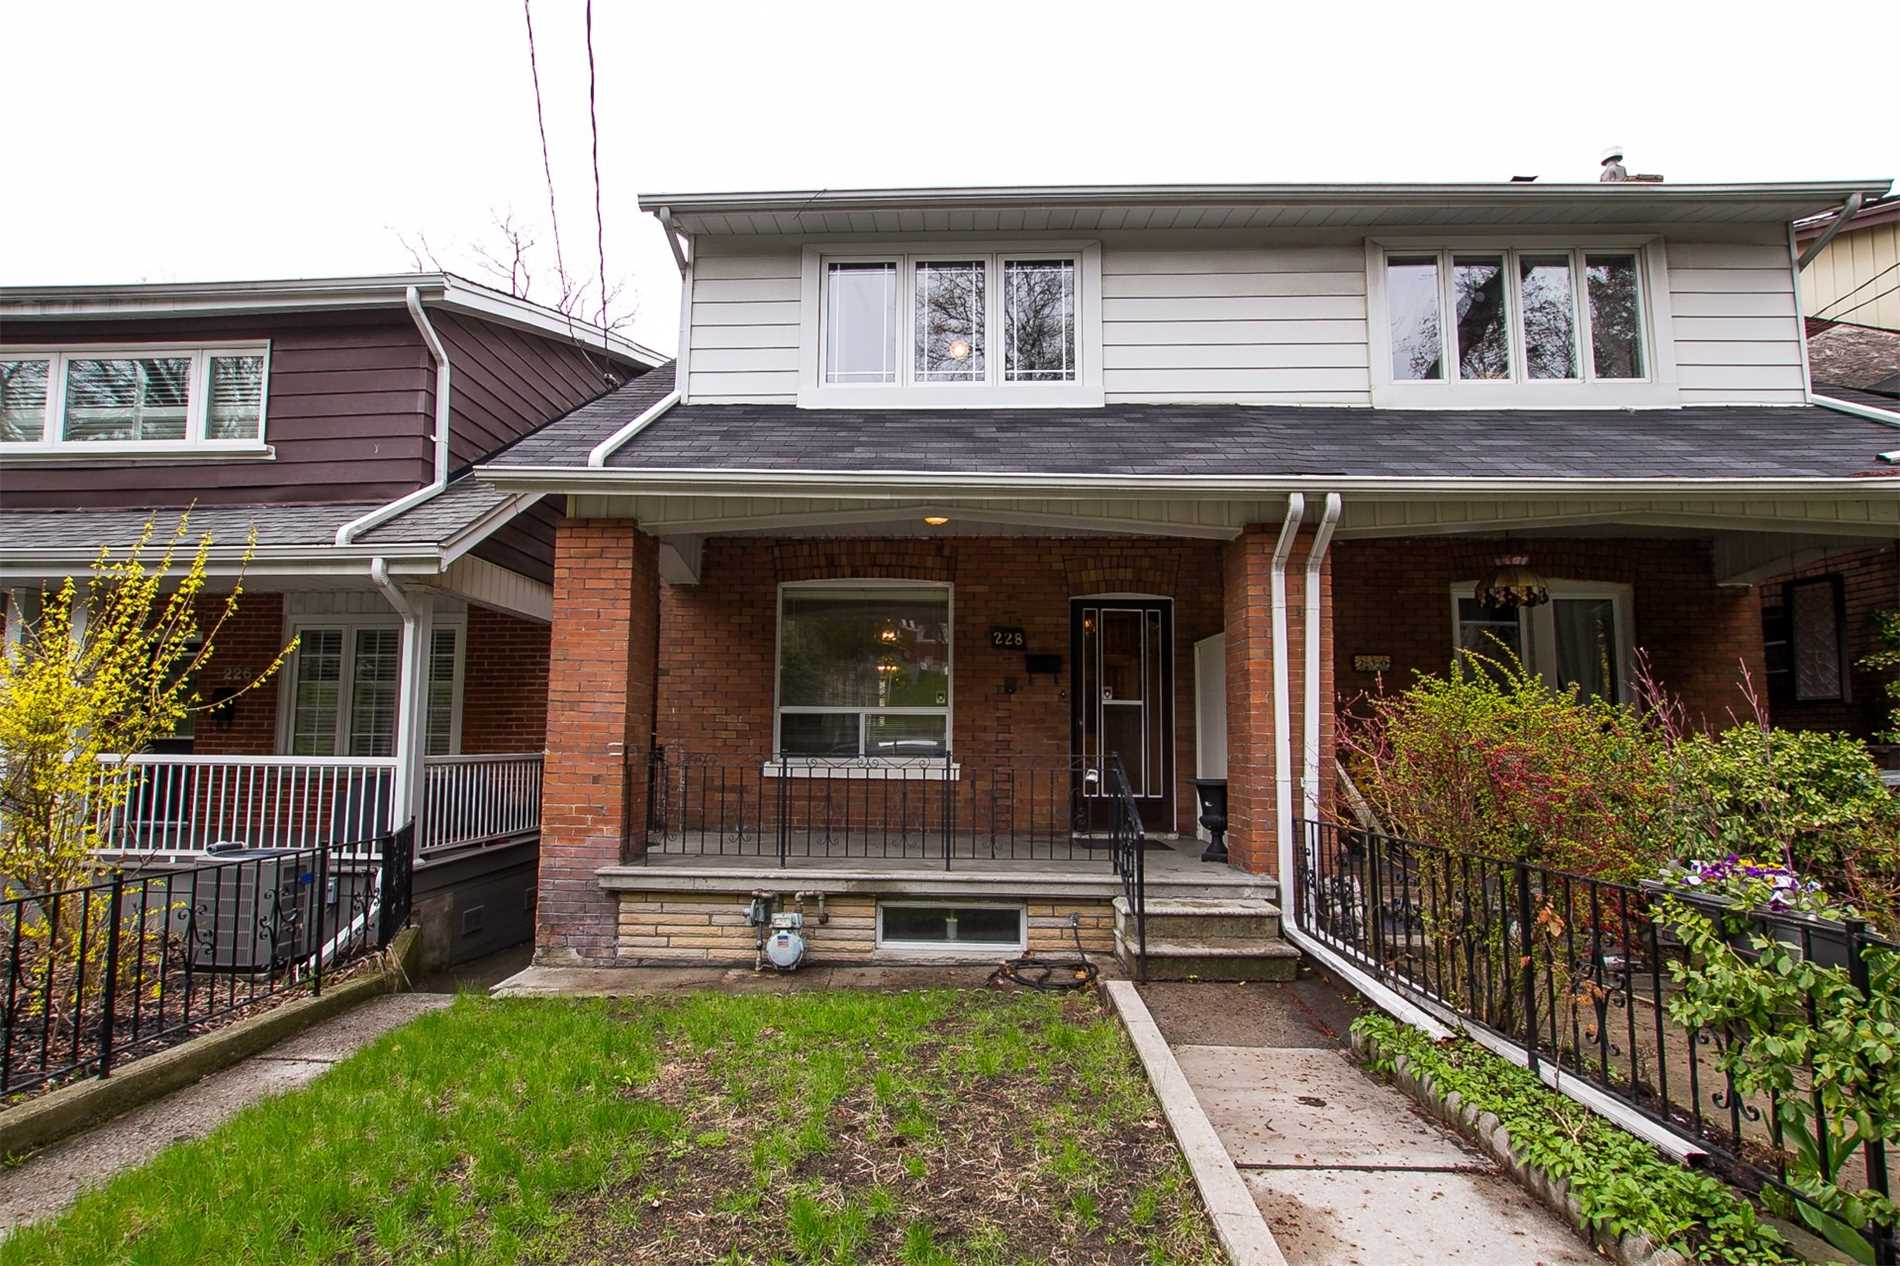 1 Bed House For Sale 228 Indian Grve Mls W4439215 See This Semi Detached House